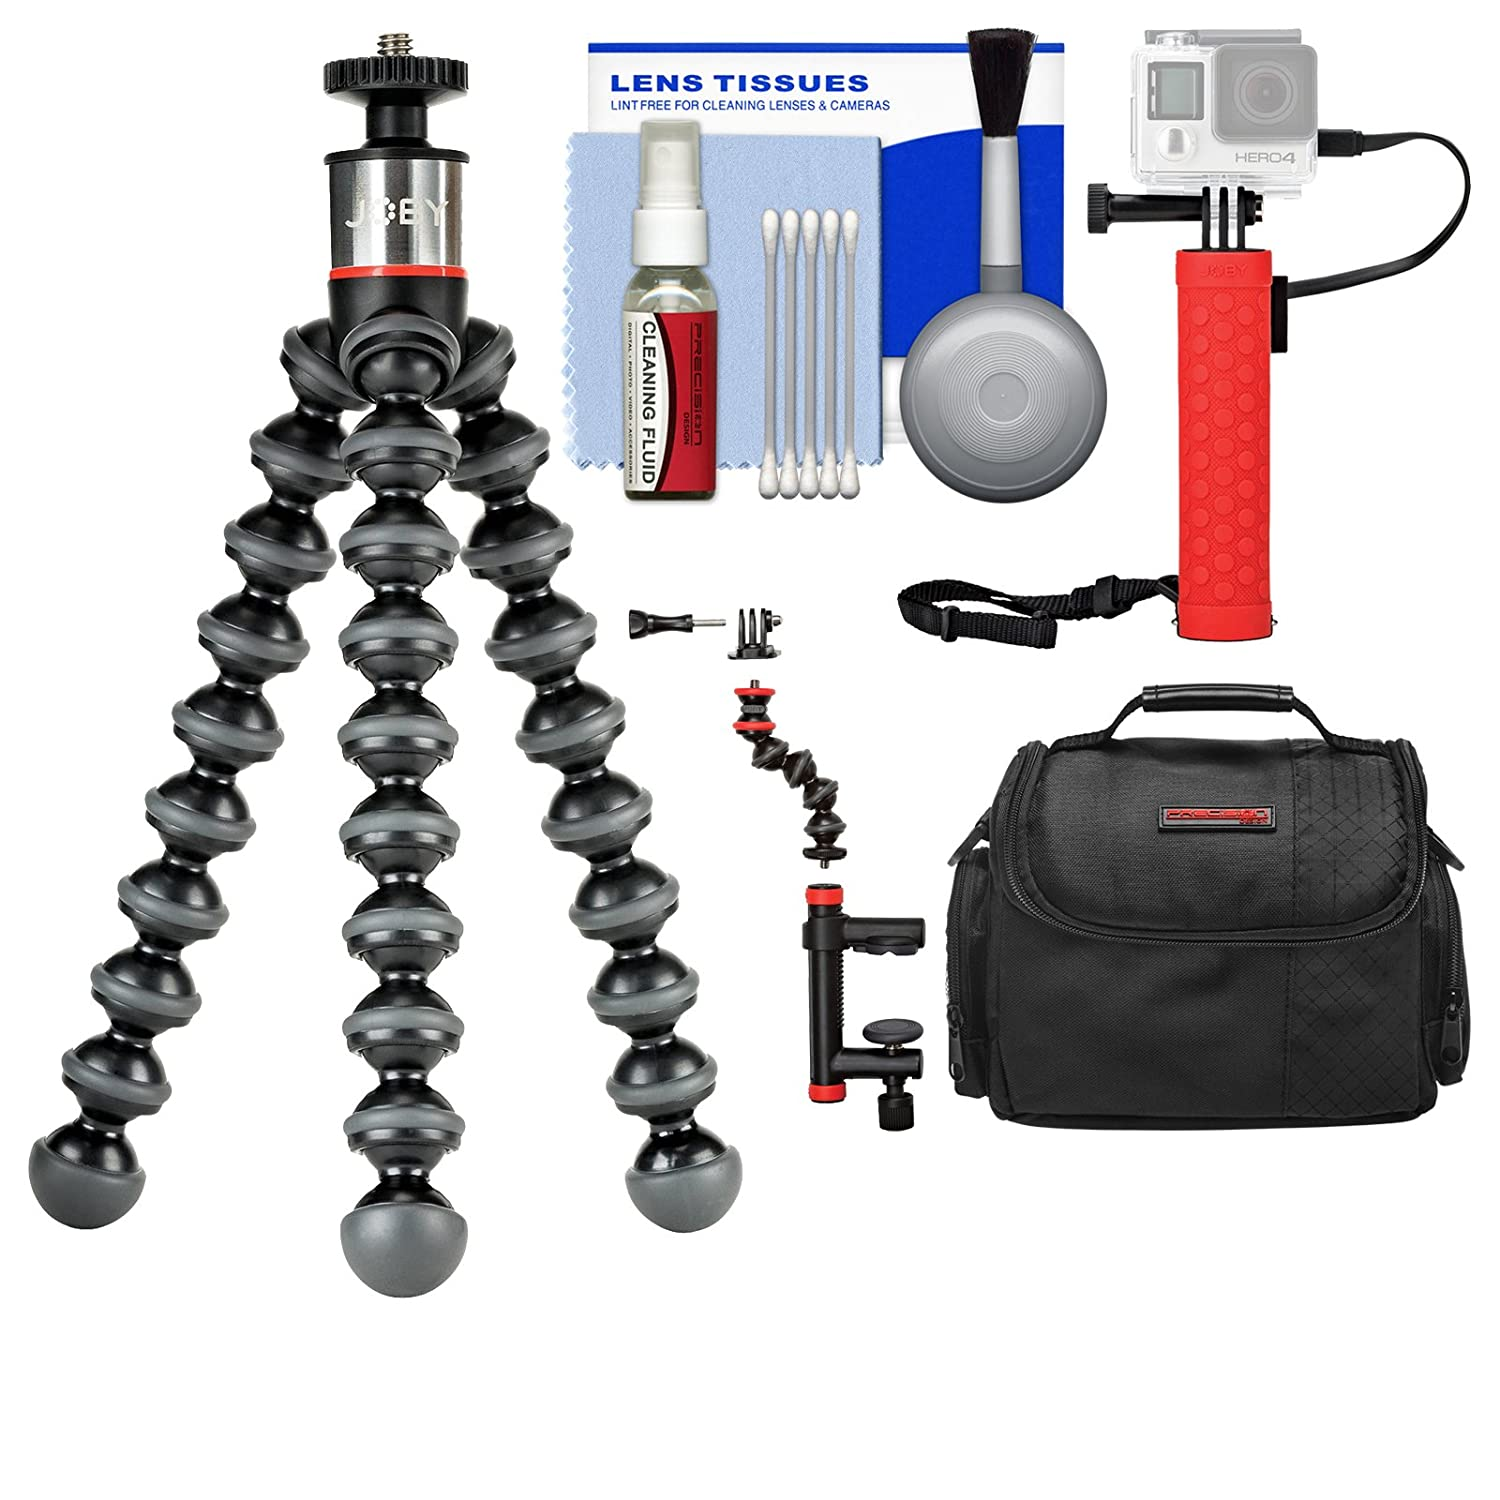 Joby GorillaPod 500 Flexible Tripod with Case + Hand Grip + Action Camera Clamp + Kit